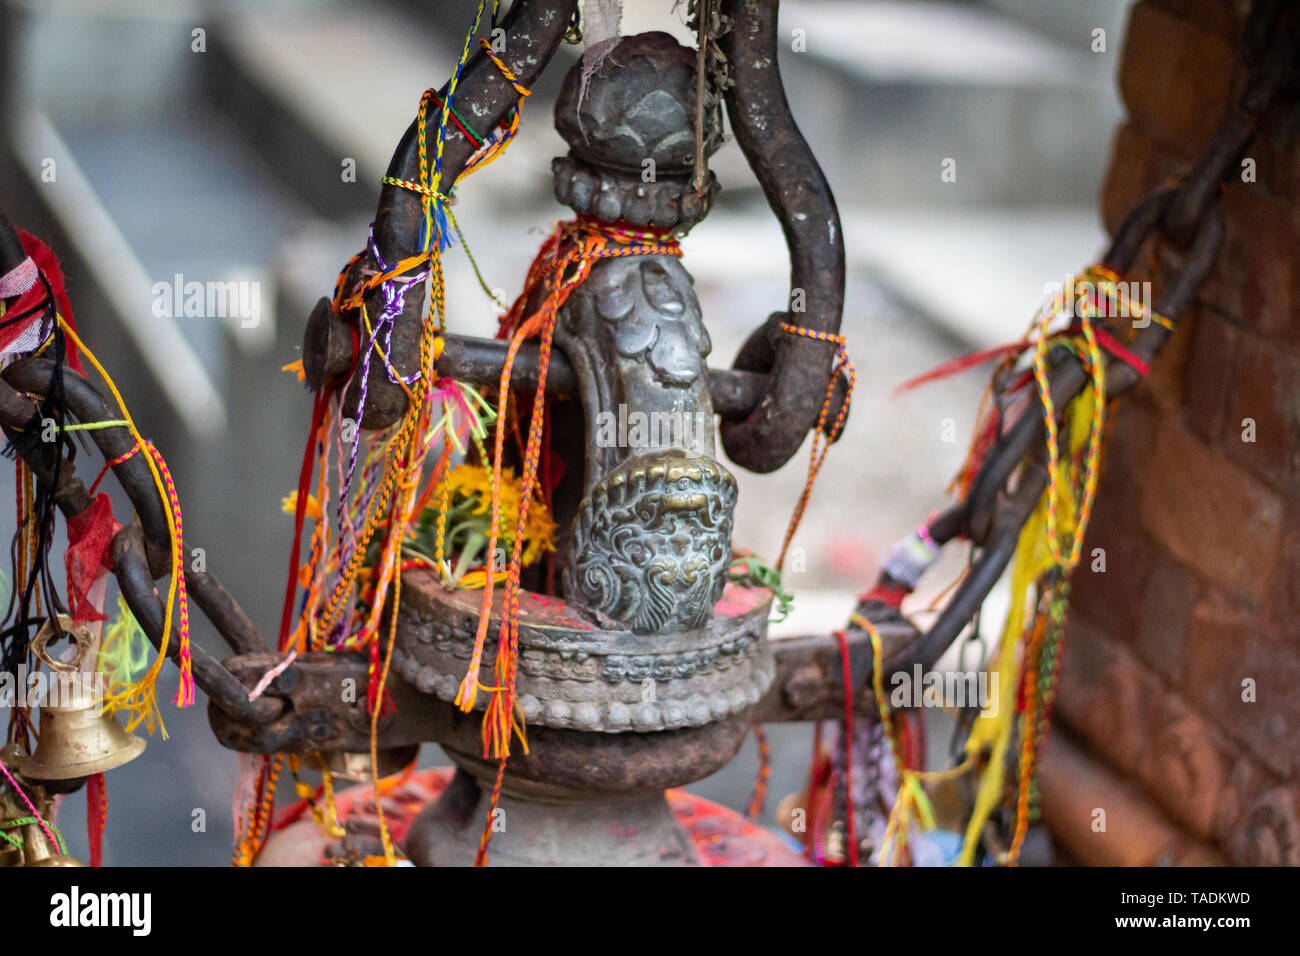 Sacred thread tied around bronze statue in Pokhara lake temple in Nepal. - Stock Image